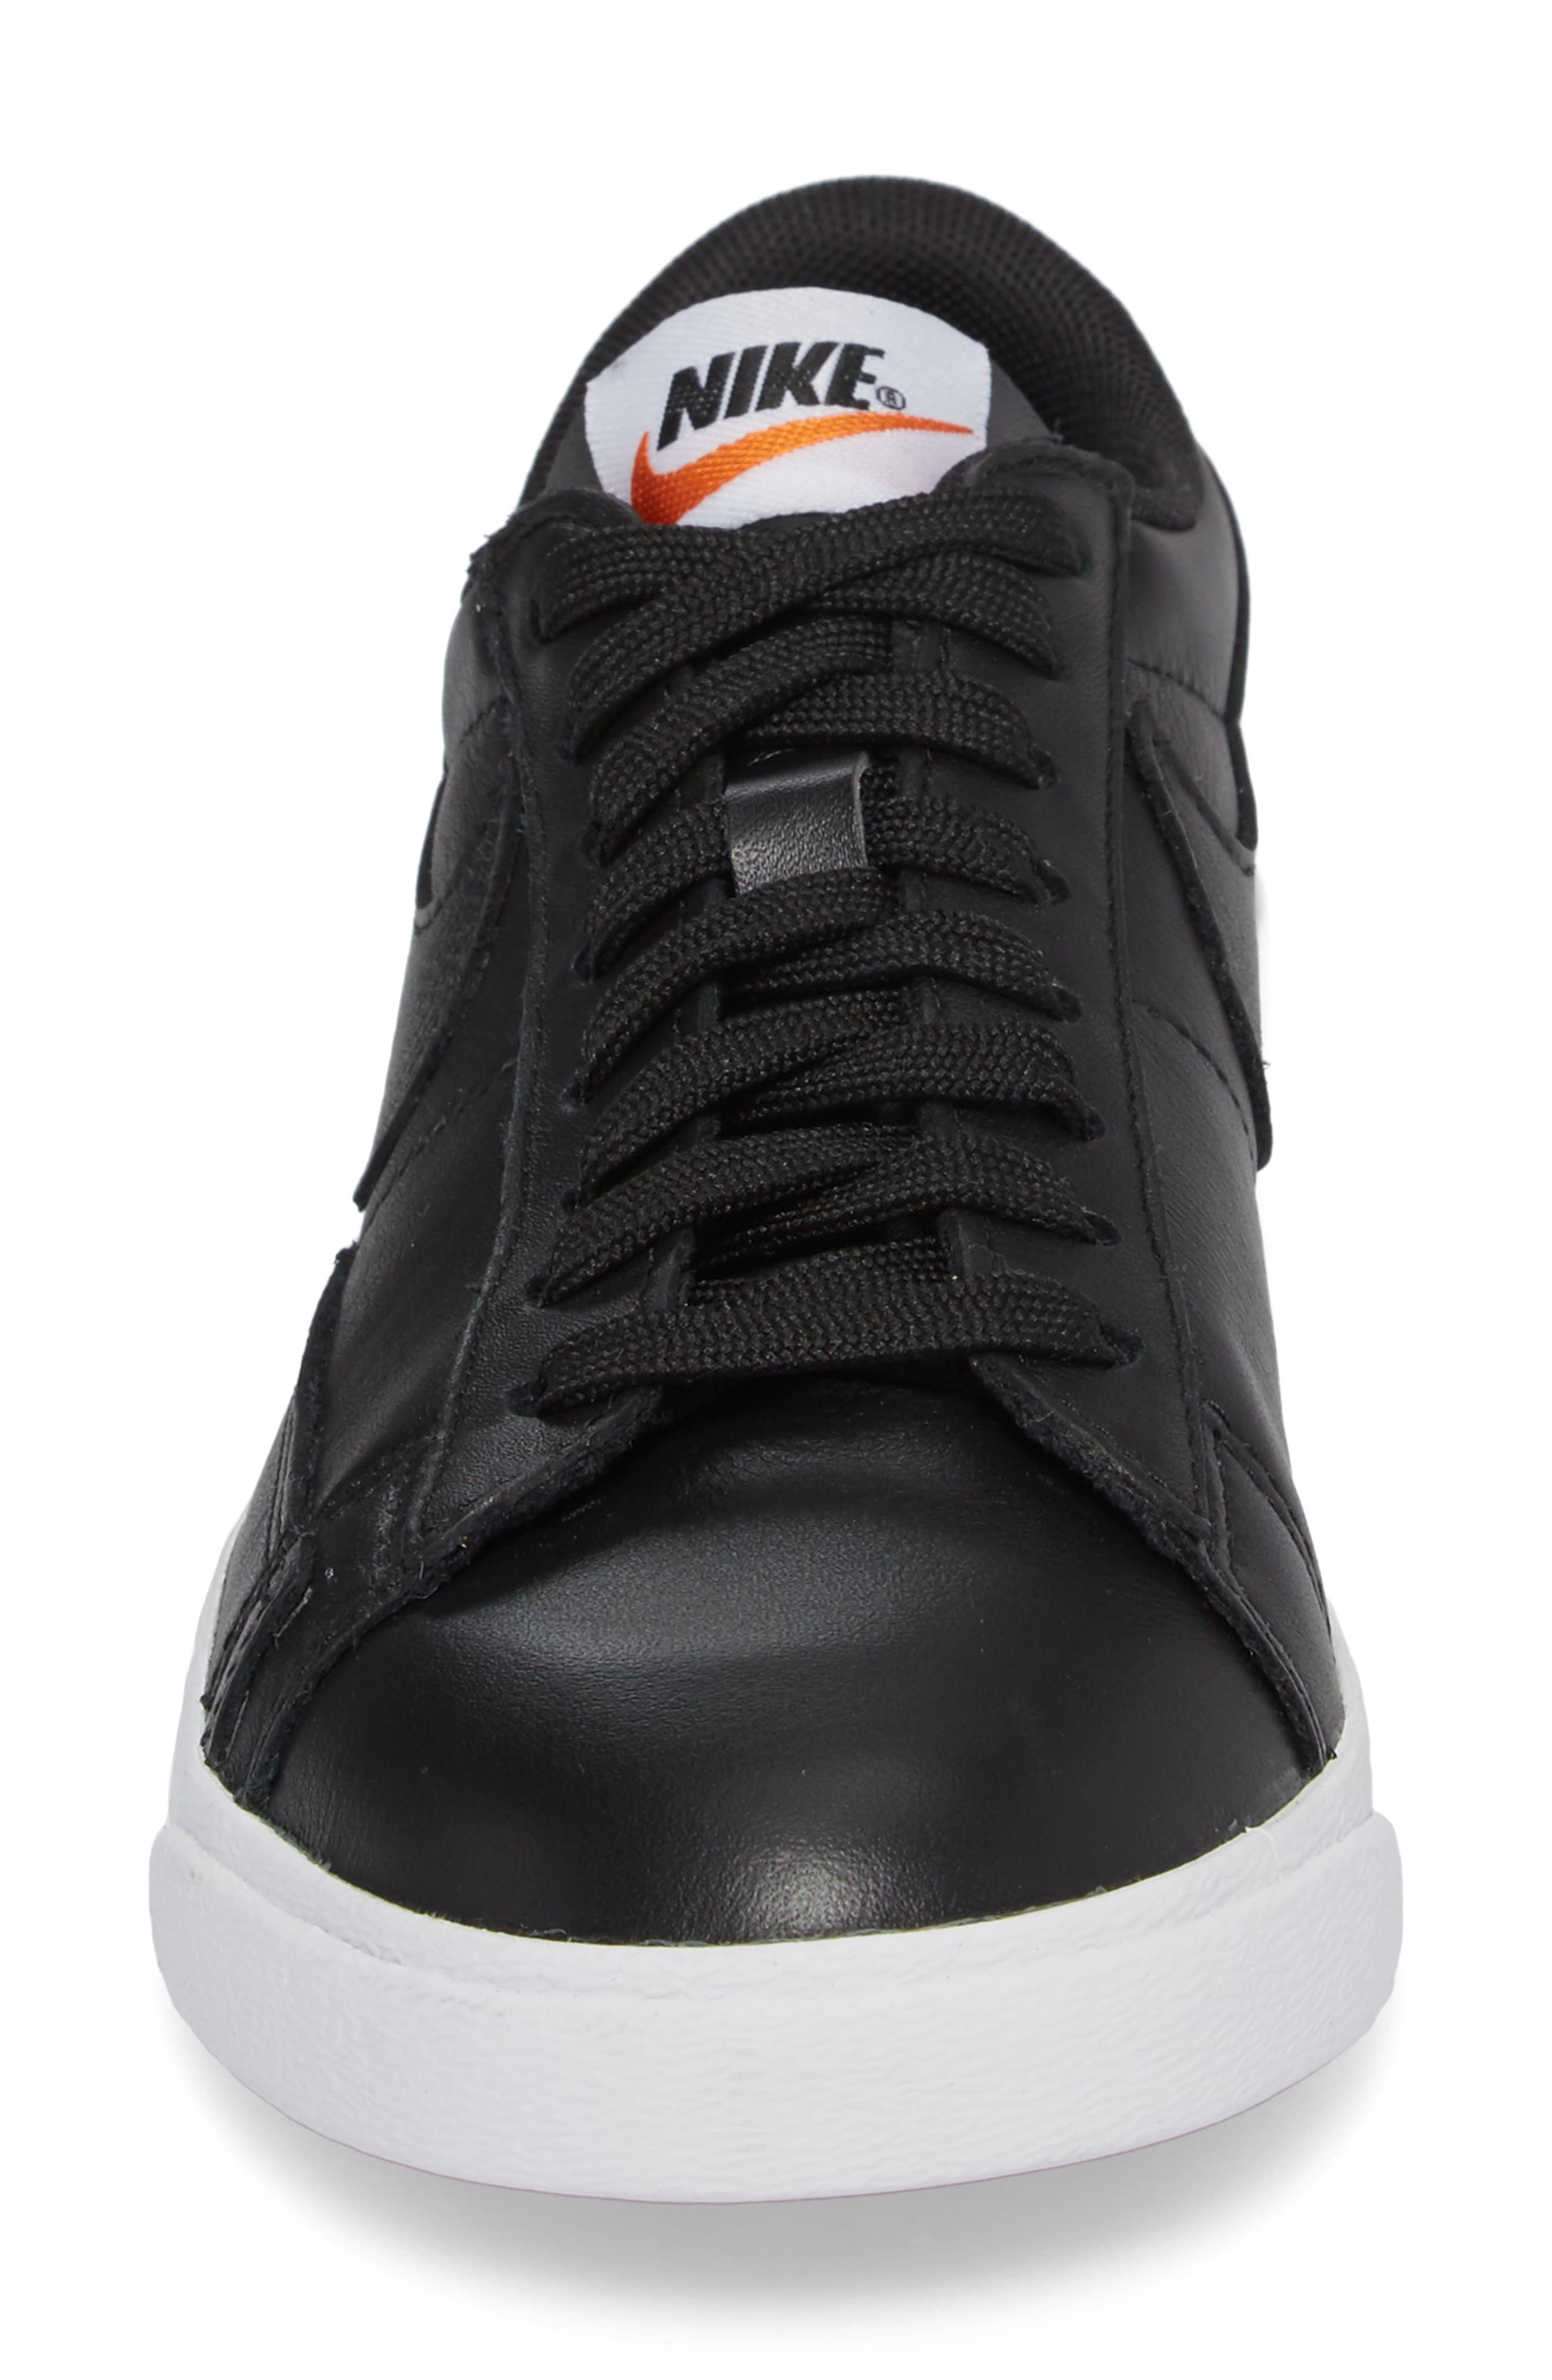 Blazer Low LE Basketball Shoe,                             Alternate thumbnail 4, color,                             Black/ Black/ White